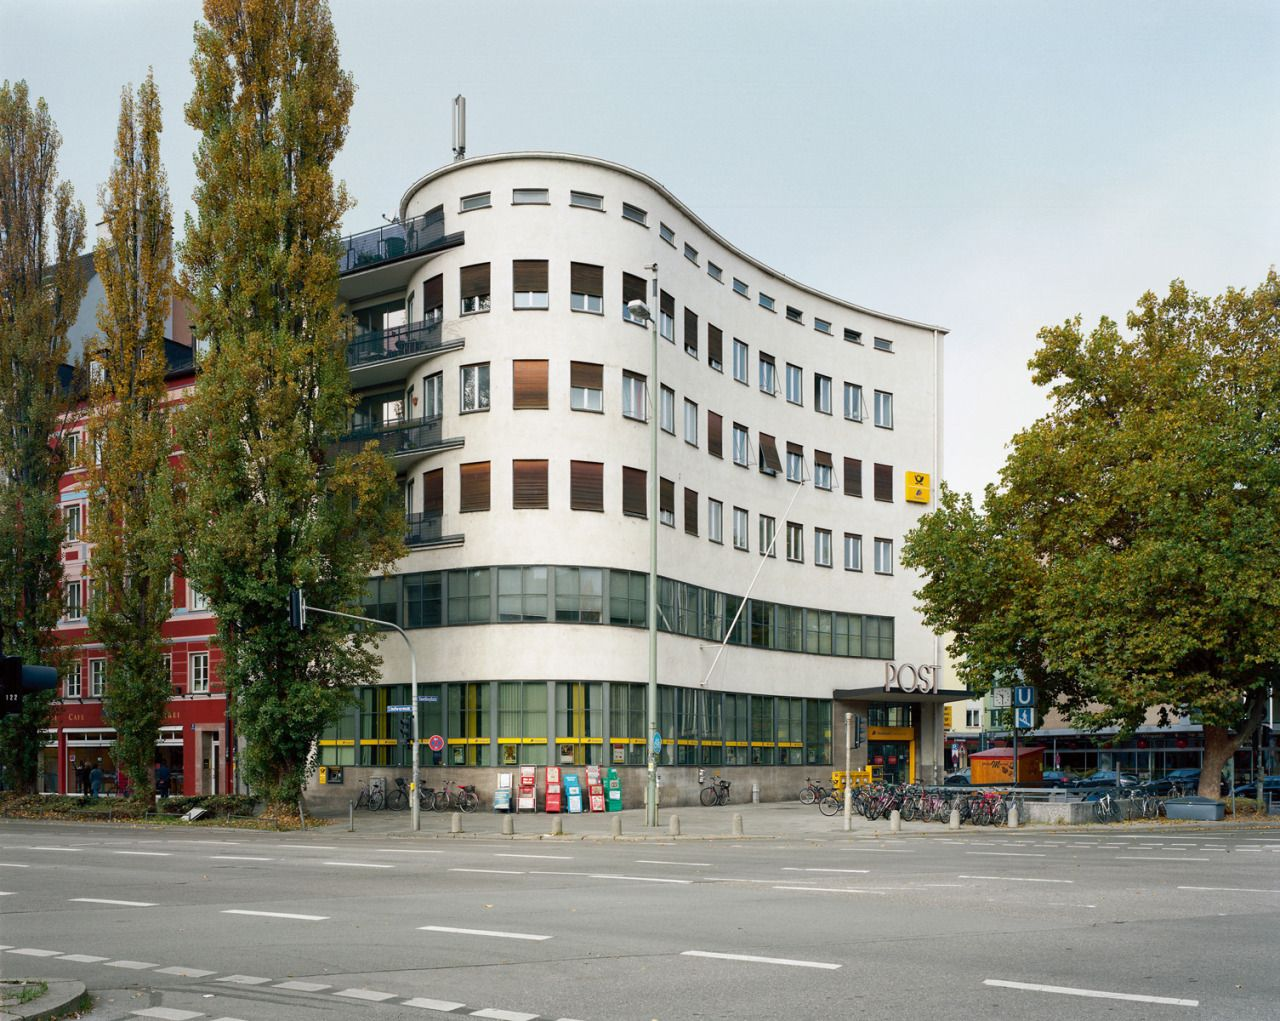 Post Office at Goetheplatz (193132) in Munich, Germany